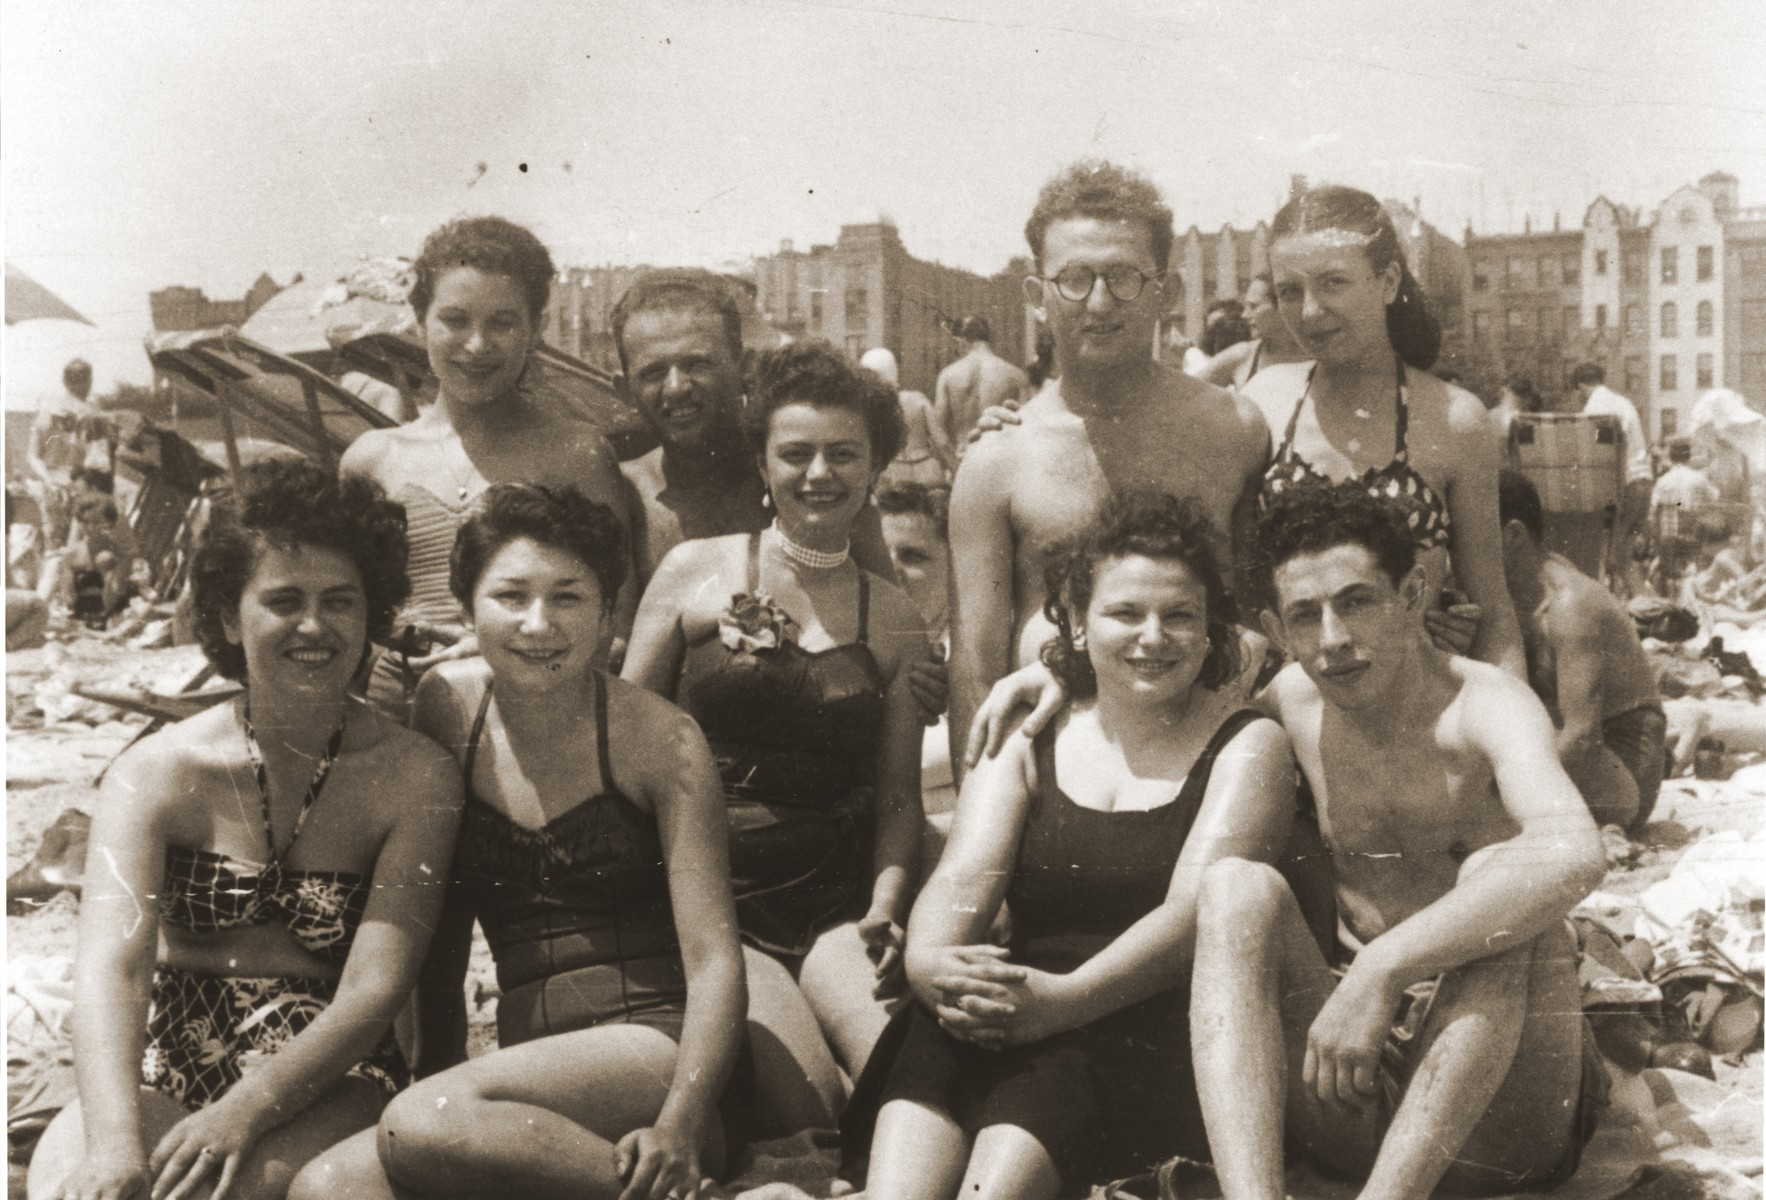 Young Jewish men and women who came to England with the orphans transport relax on the beach.  Pictured in the back row, from left to right are, Lillie Moskovich, Willie Zelovic, Erica Grossman (center wearing a necklace), Hershel and Renate Zelovic.  In the front row, from left to right are, Paulette, Elizabeth Weiss, and Ibi and Willie Rosenberg.